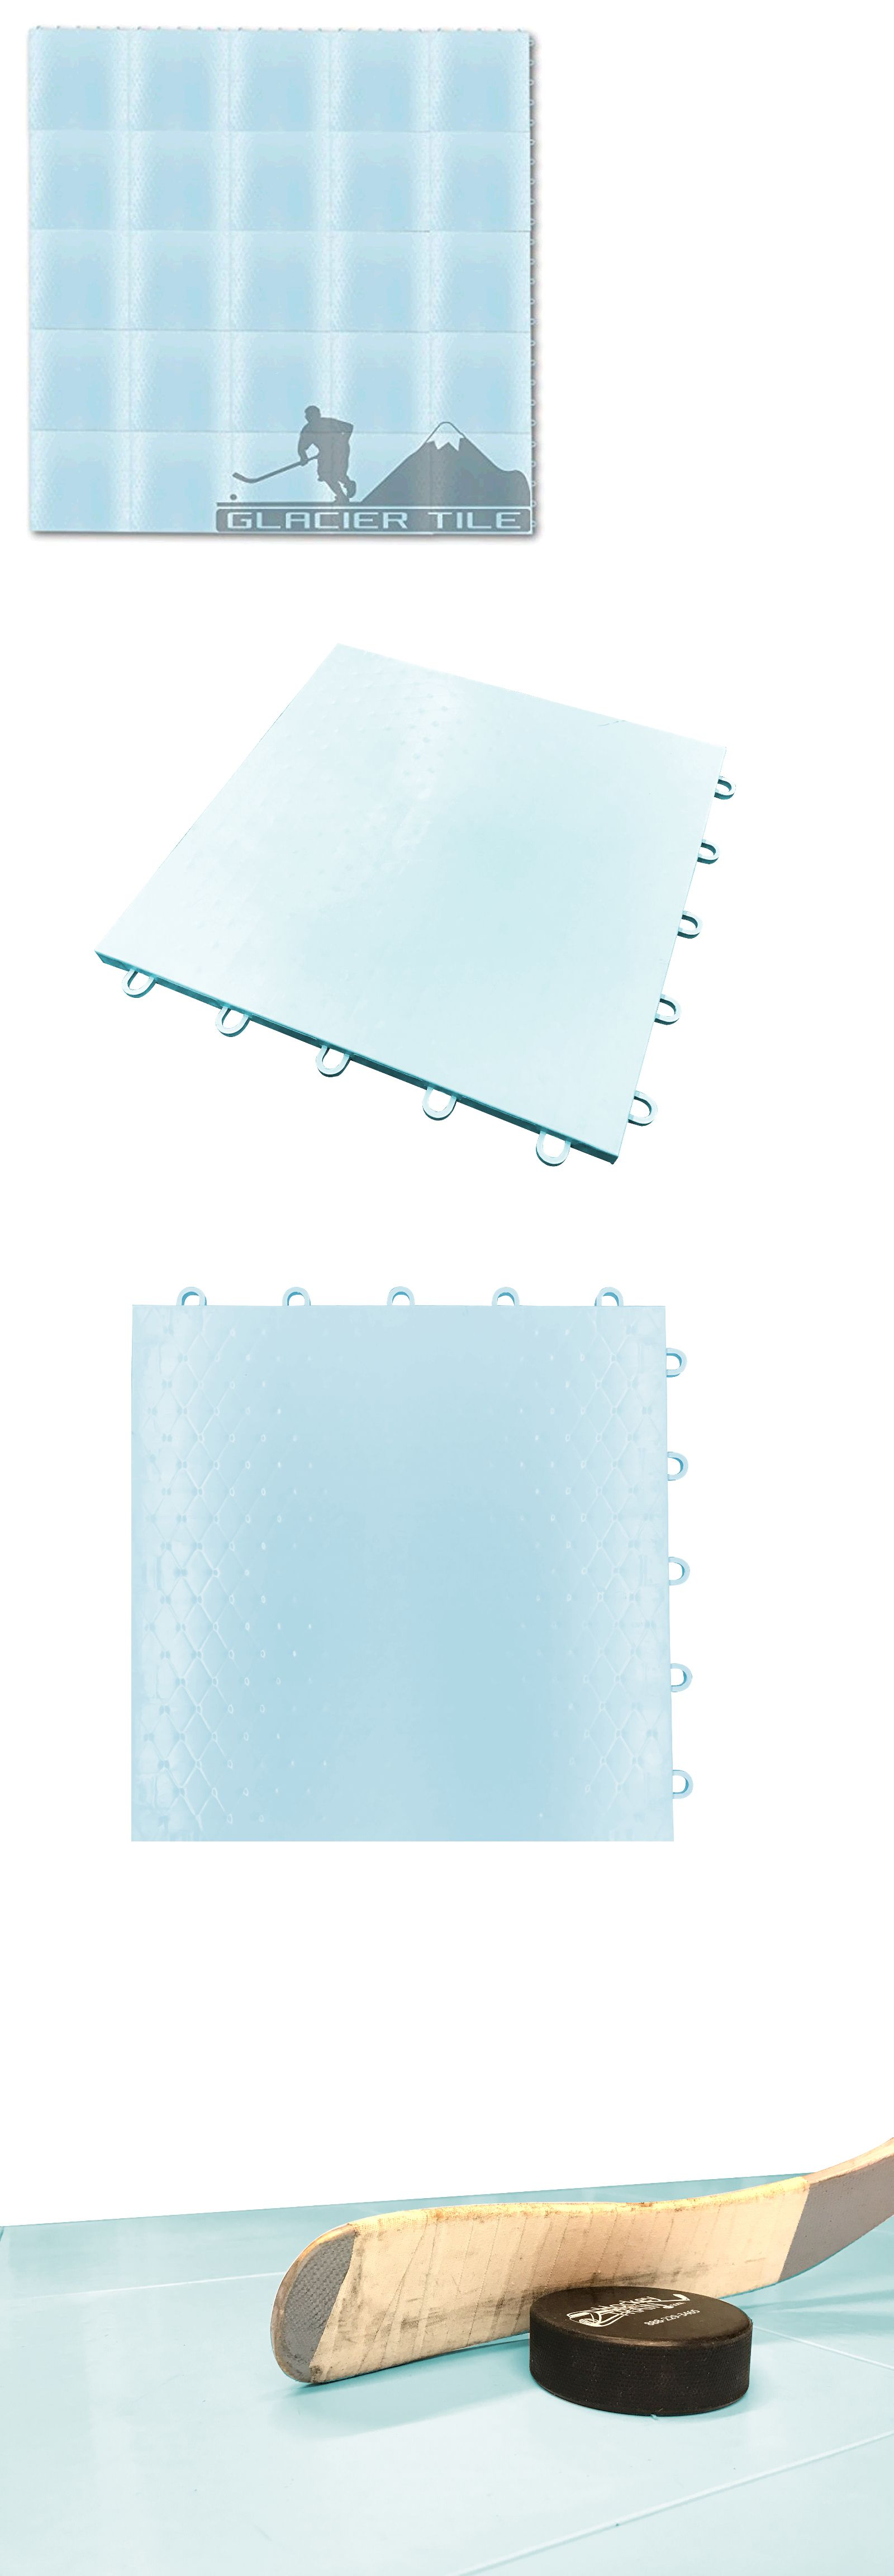 Other Ice And Roller Hockey 2911 25sf Hockey Floor Tiles Glacier